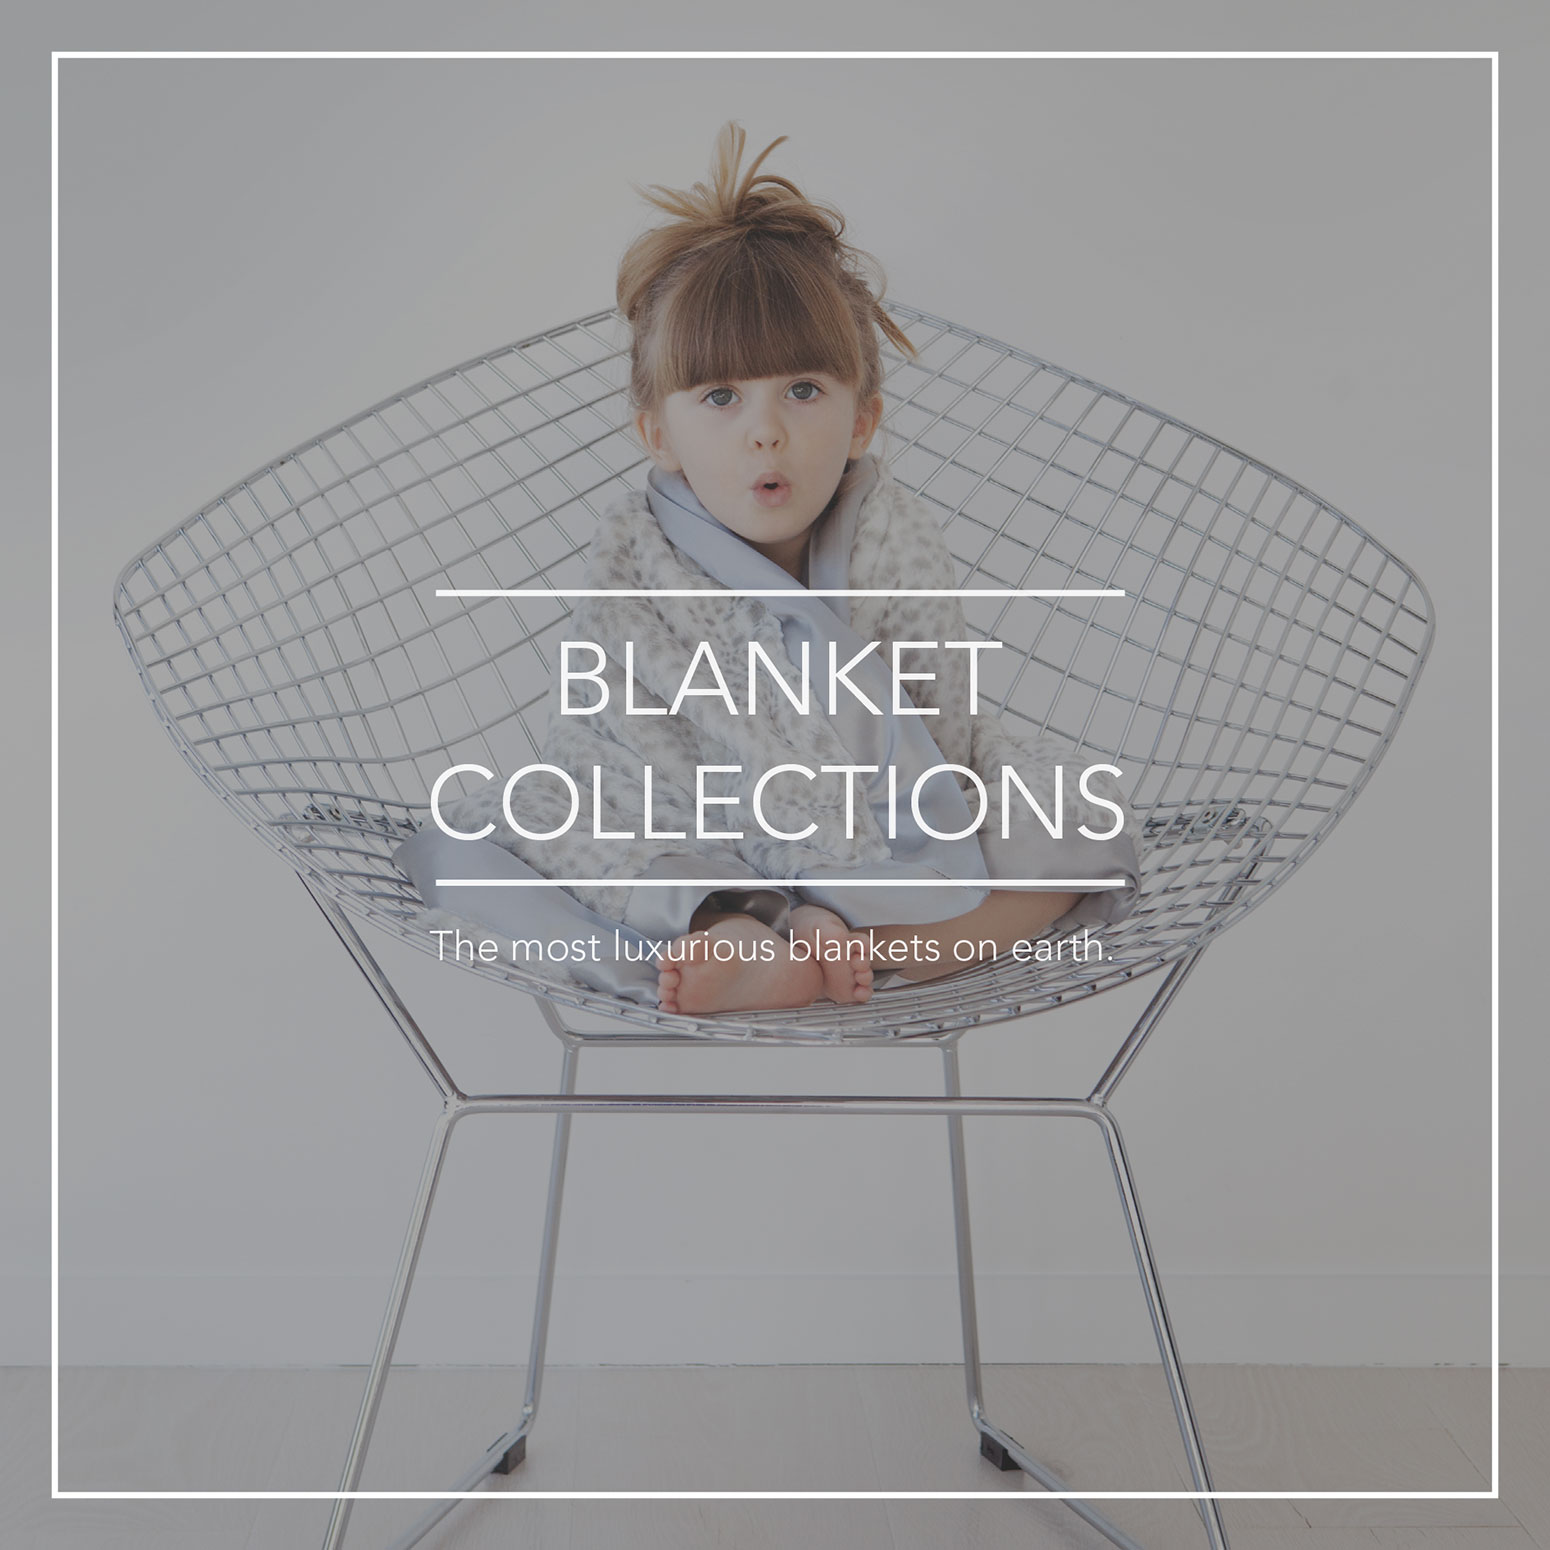 Blanket Collections